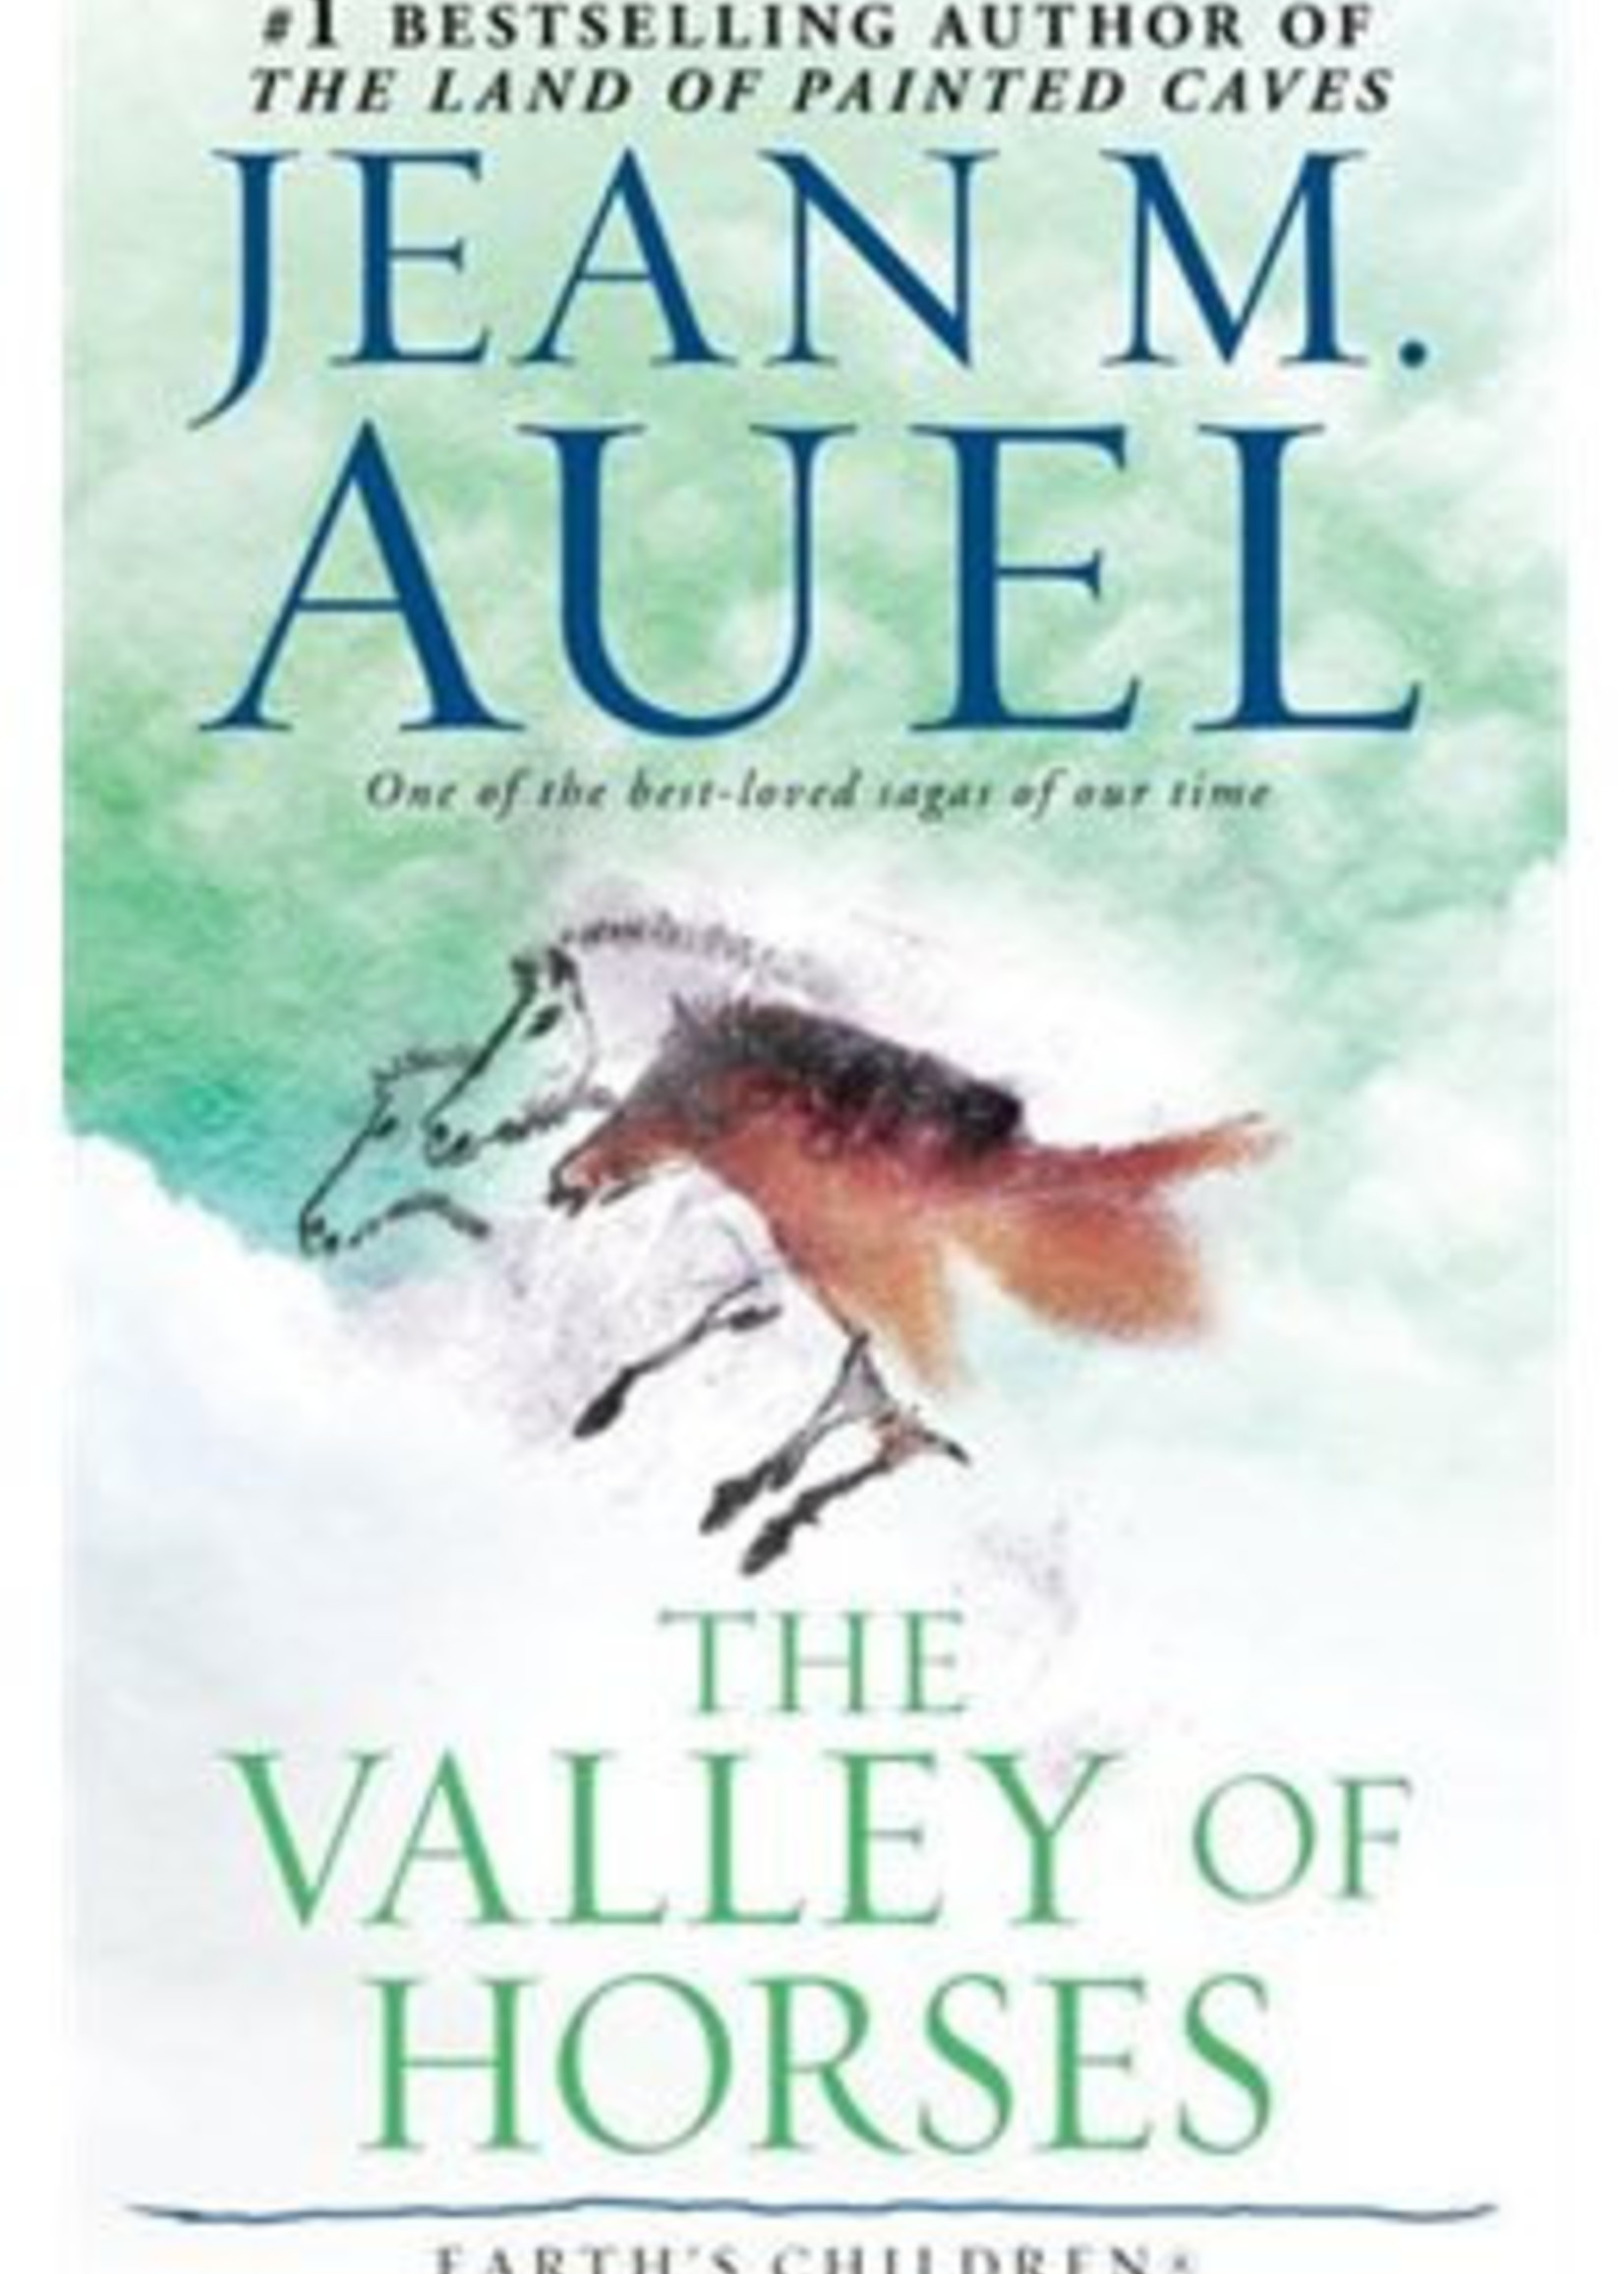 The Valley of Horses (Earth's Children #2) by Jean M. Auel